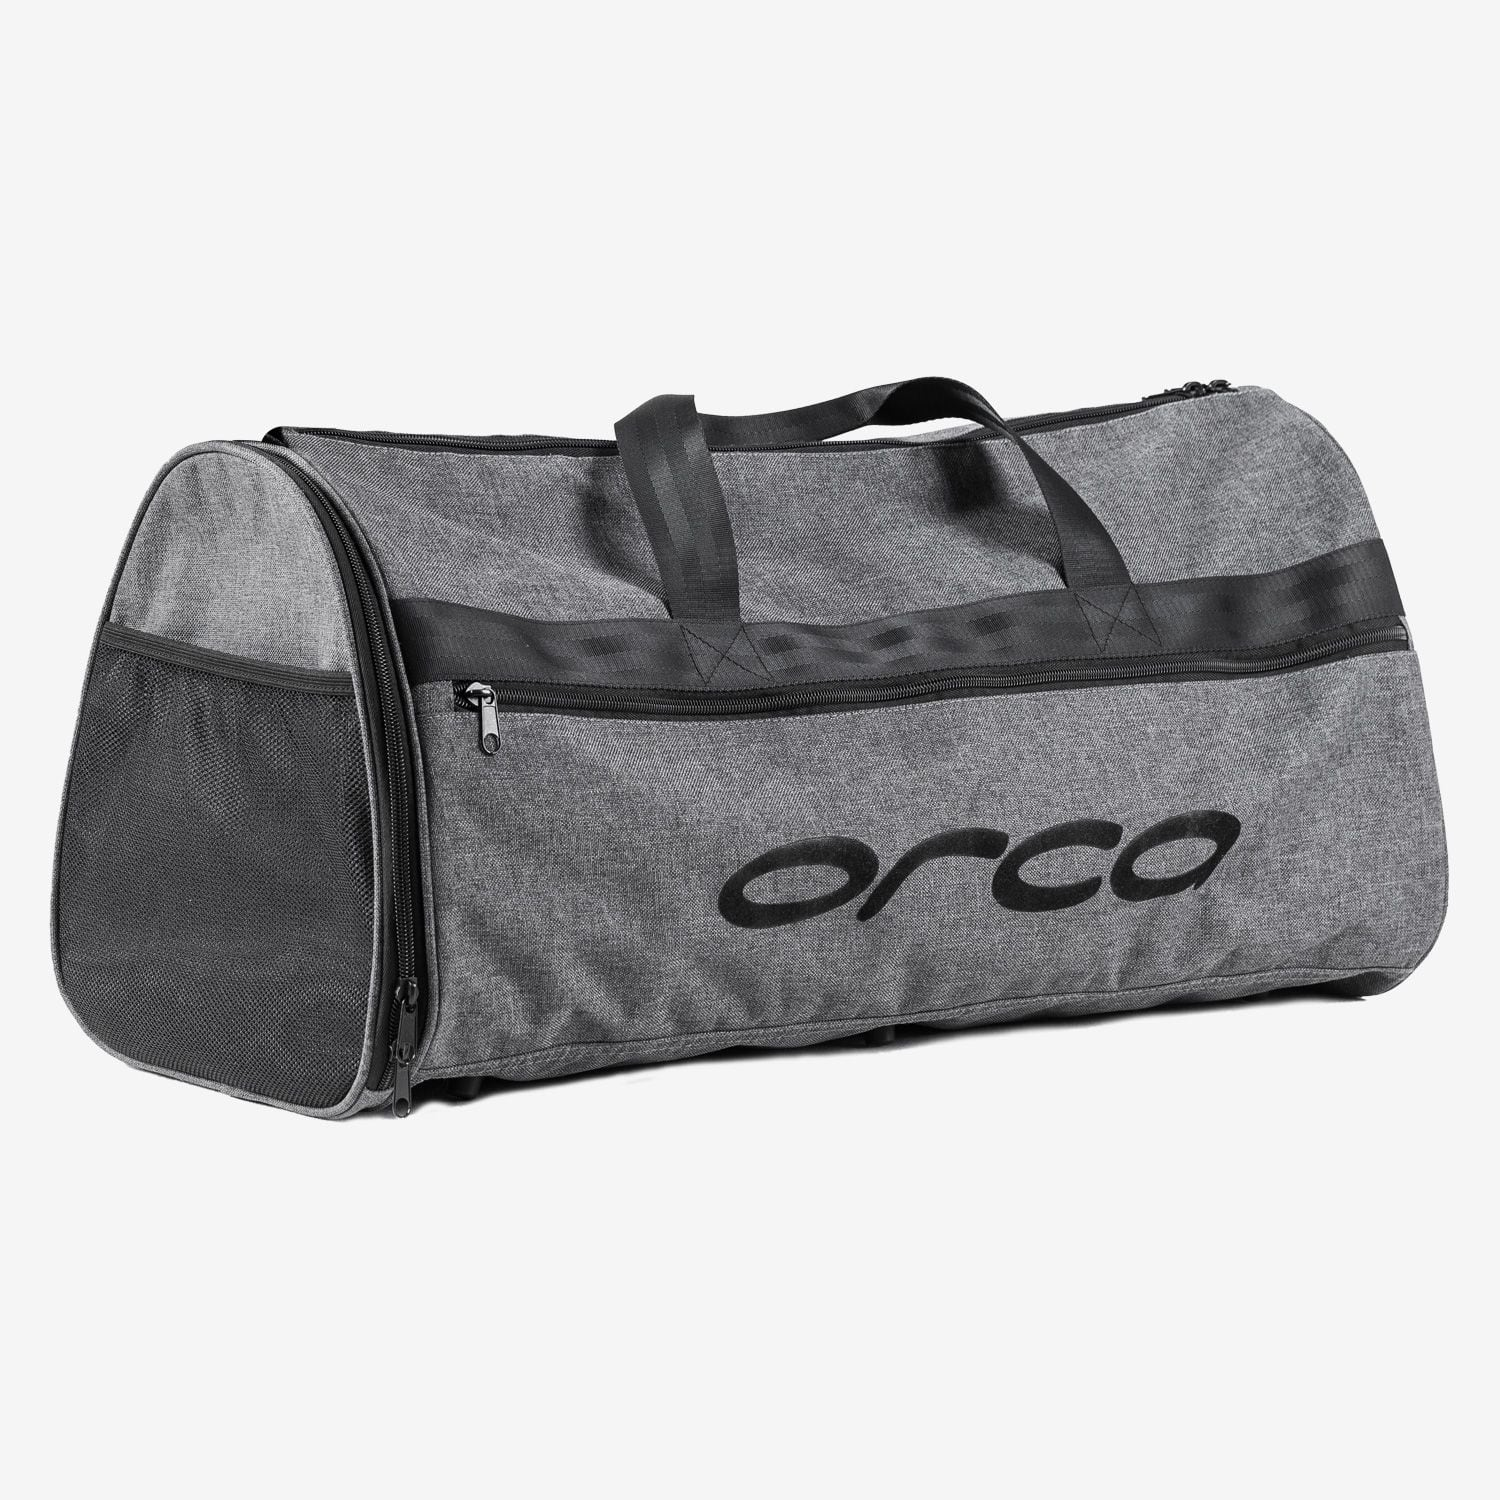 Training Bag - orca - schwarz/grau